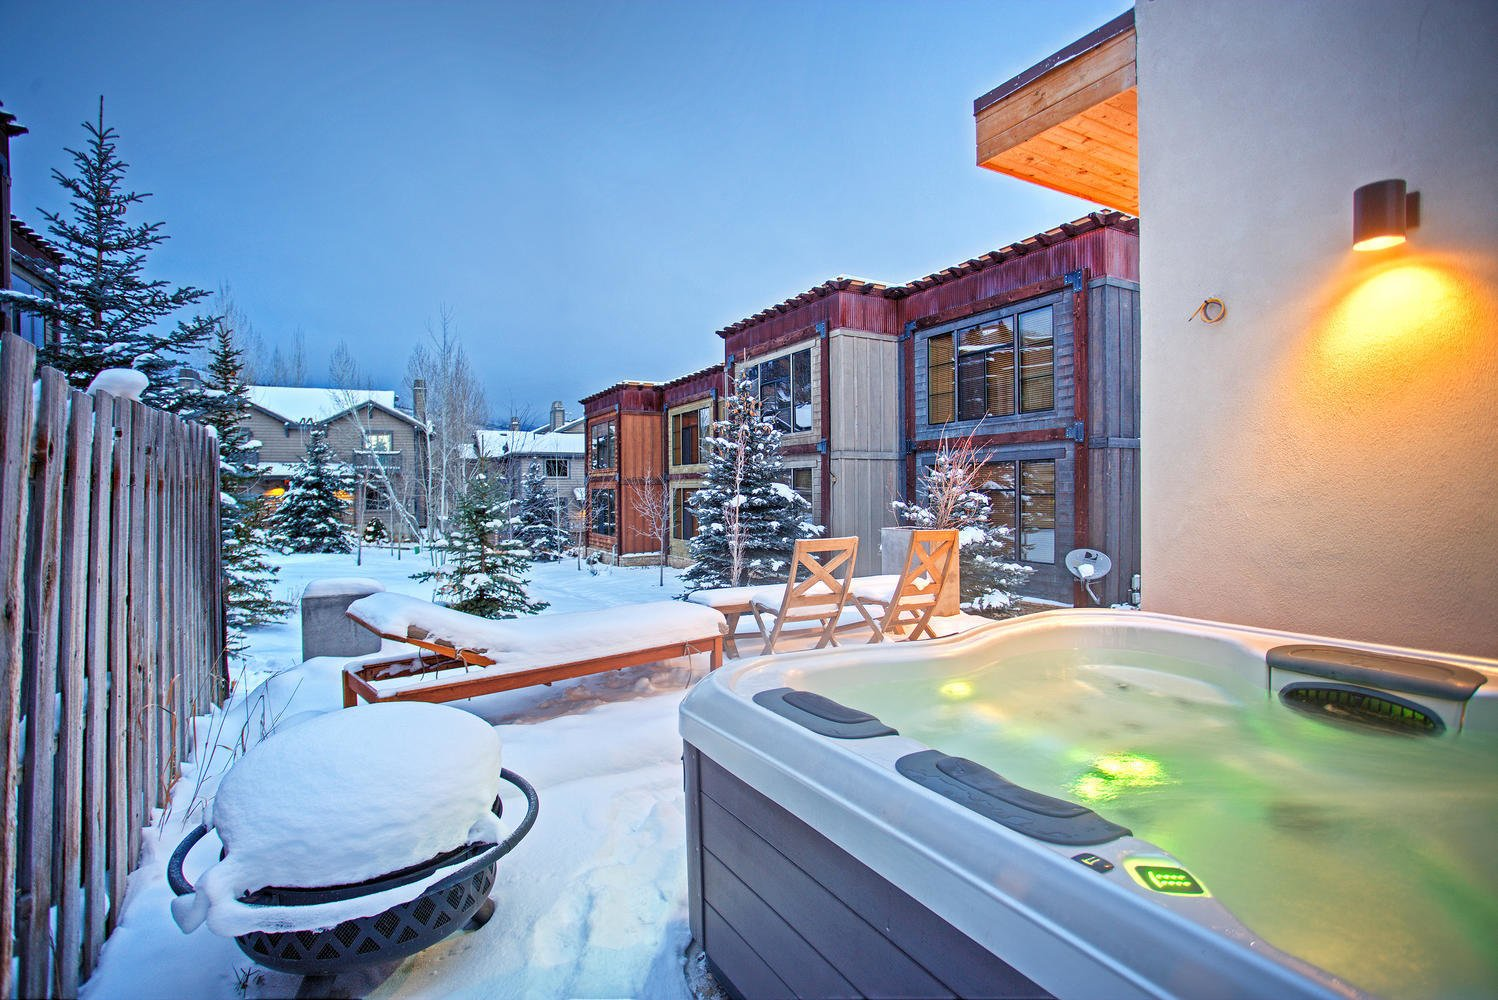 The lower deck holds a fire pit and hot tub, perfect for outdoor entertaining despite the cold.  Photo 3 of 9 in Be at Home With Park City's Slopes For $1.6M